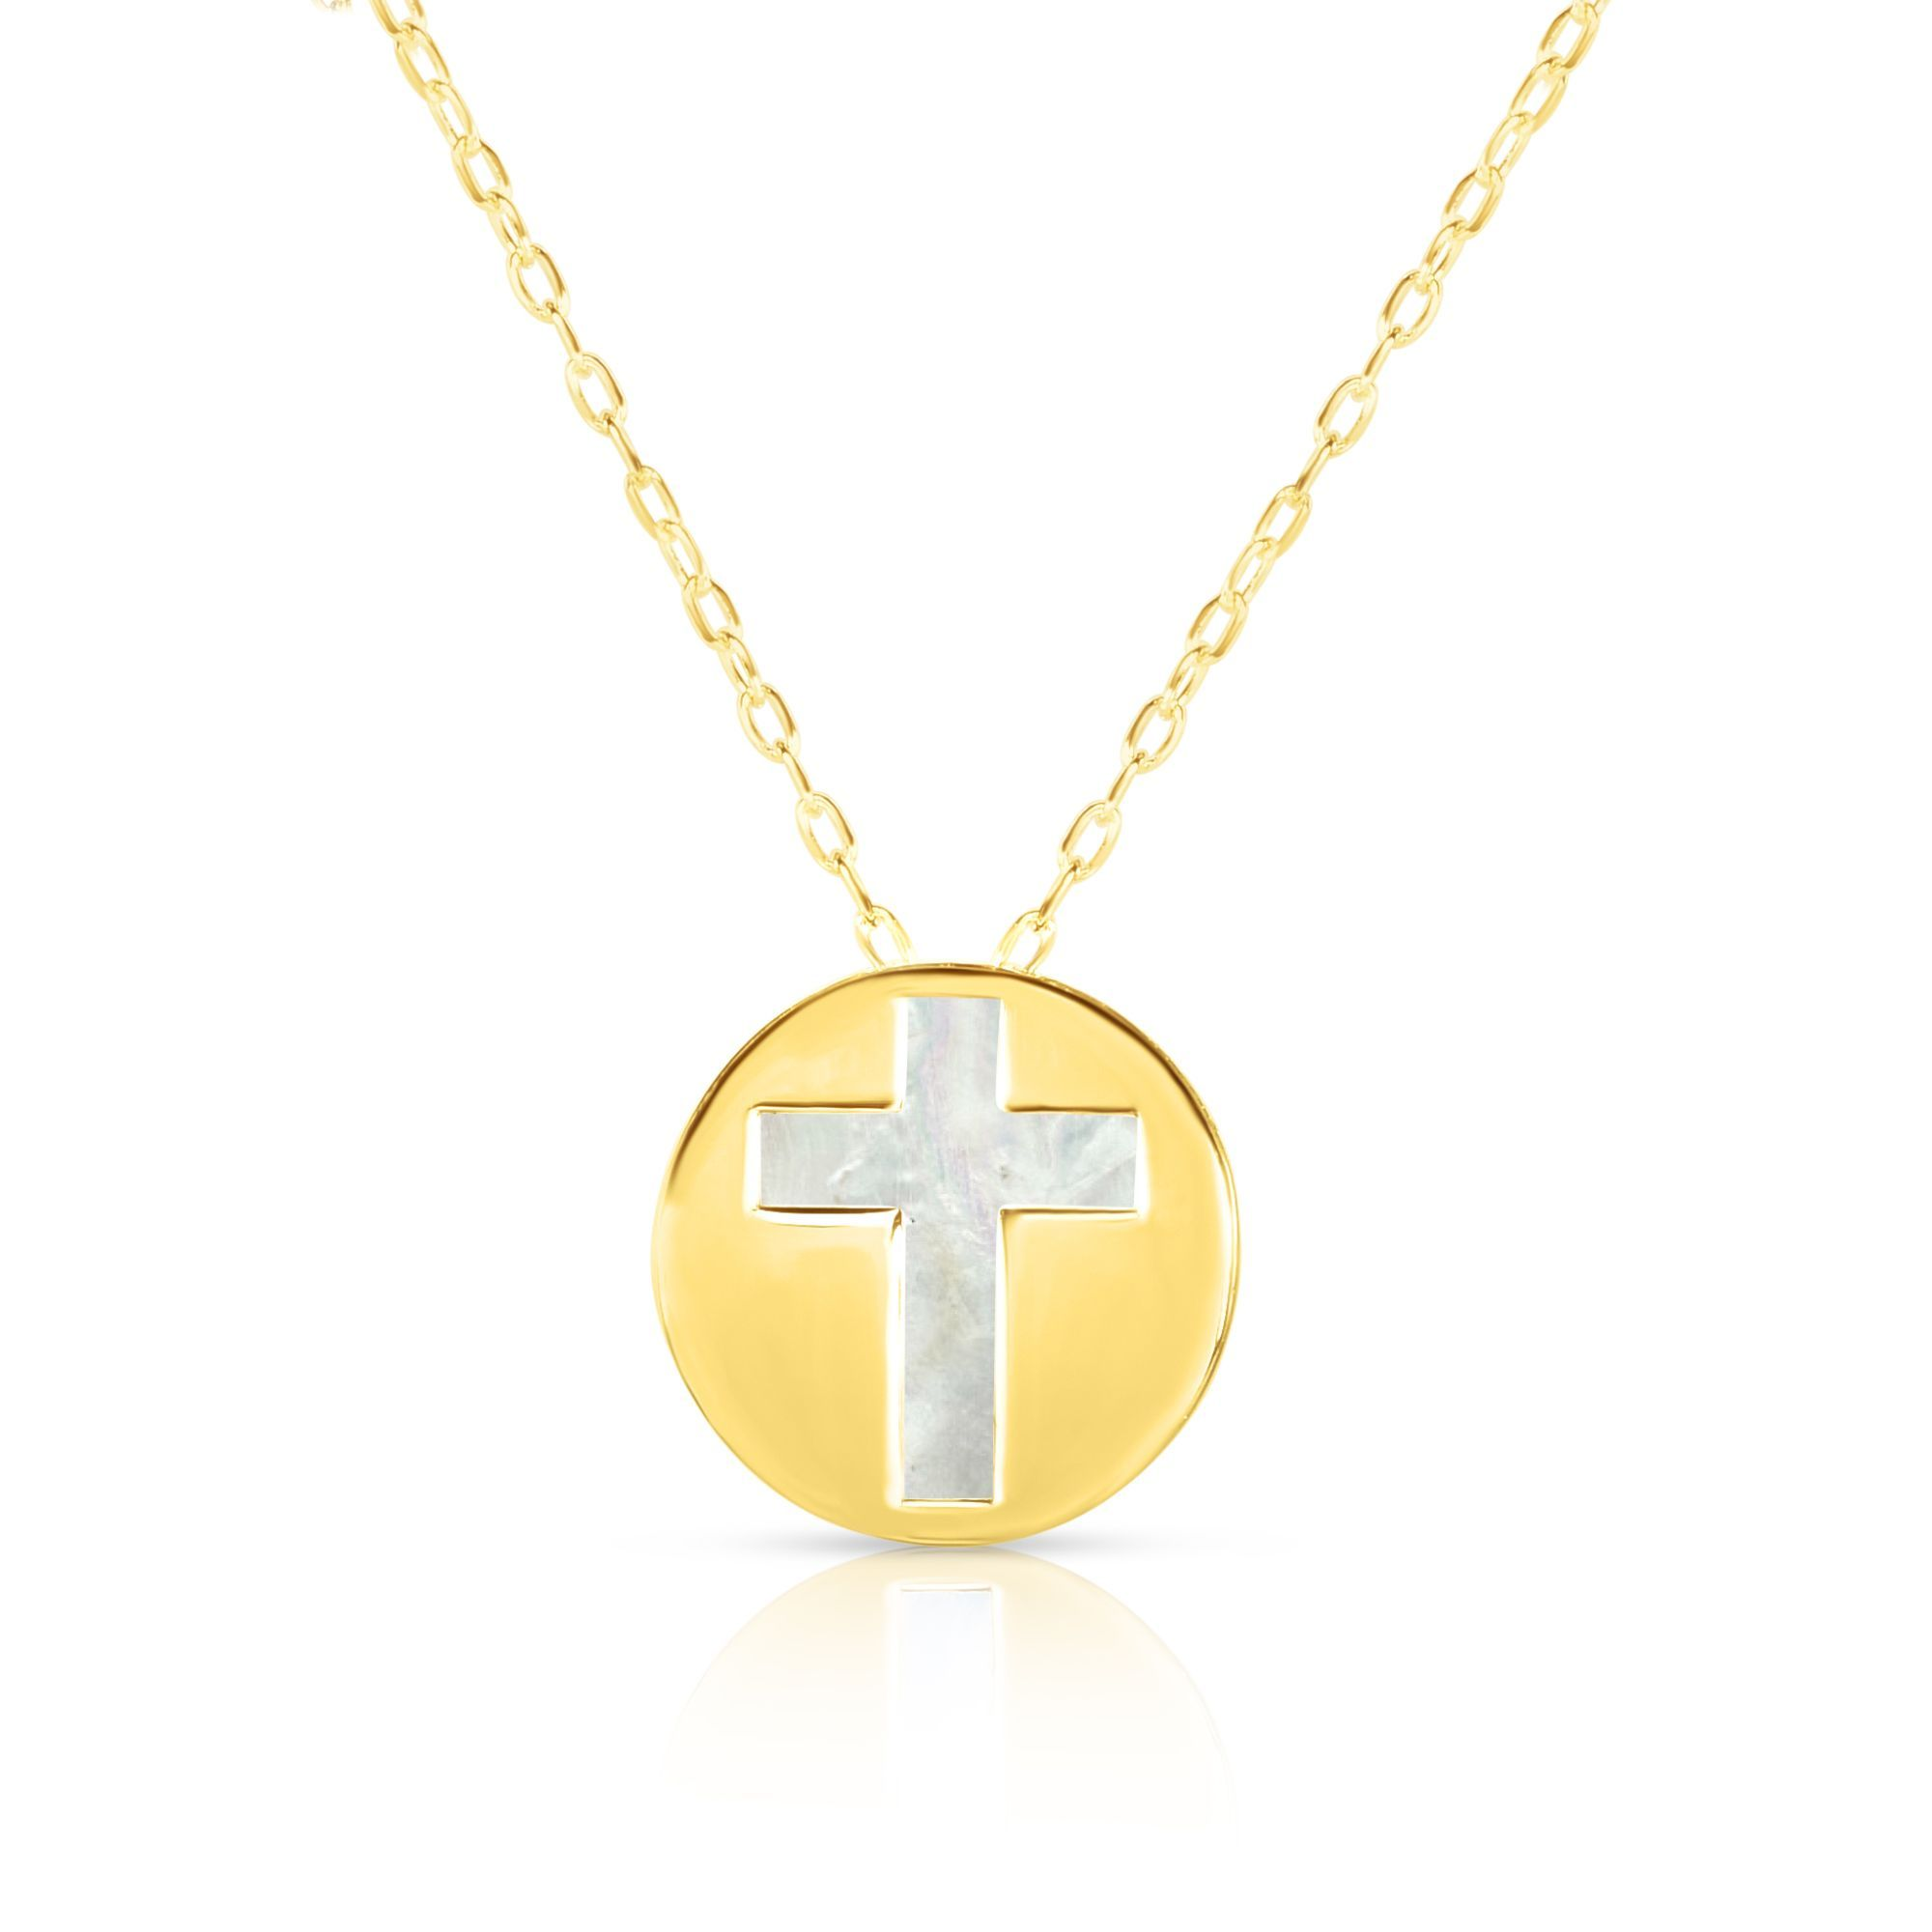 14K Yellow Gold Mother Of Pearl Cross Pendant Necklace, 16